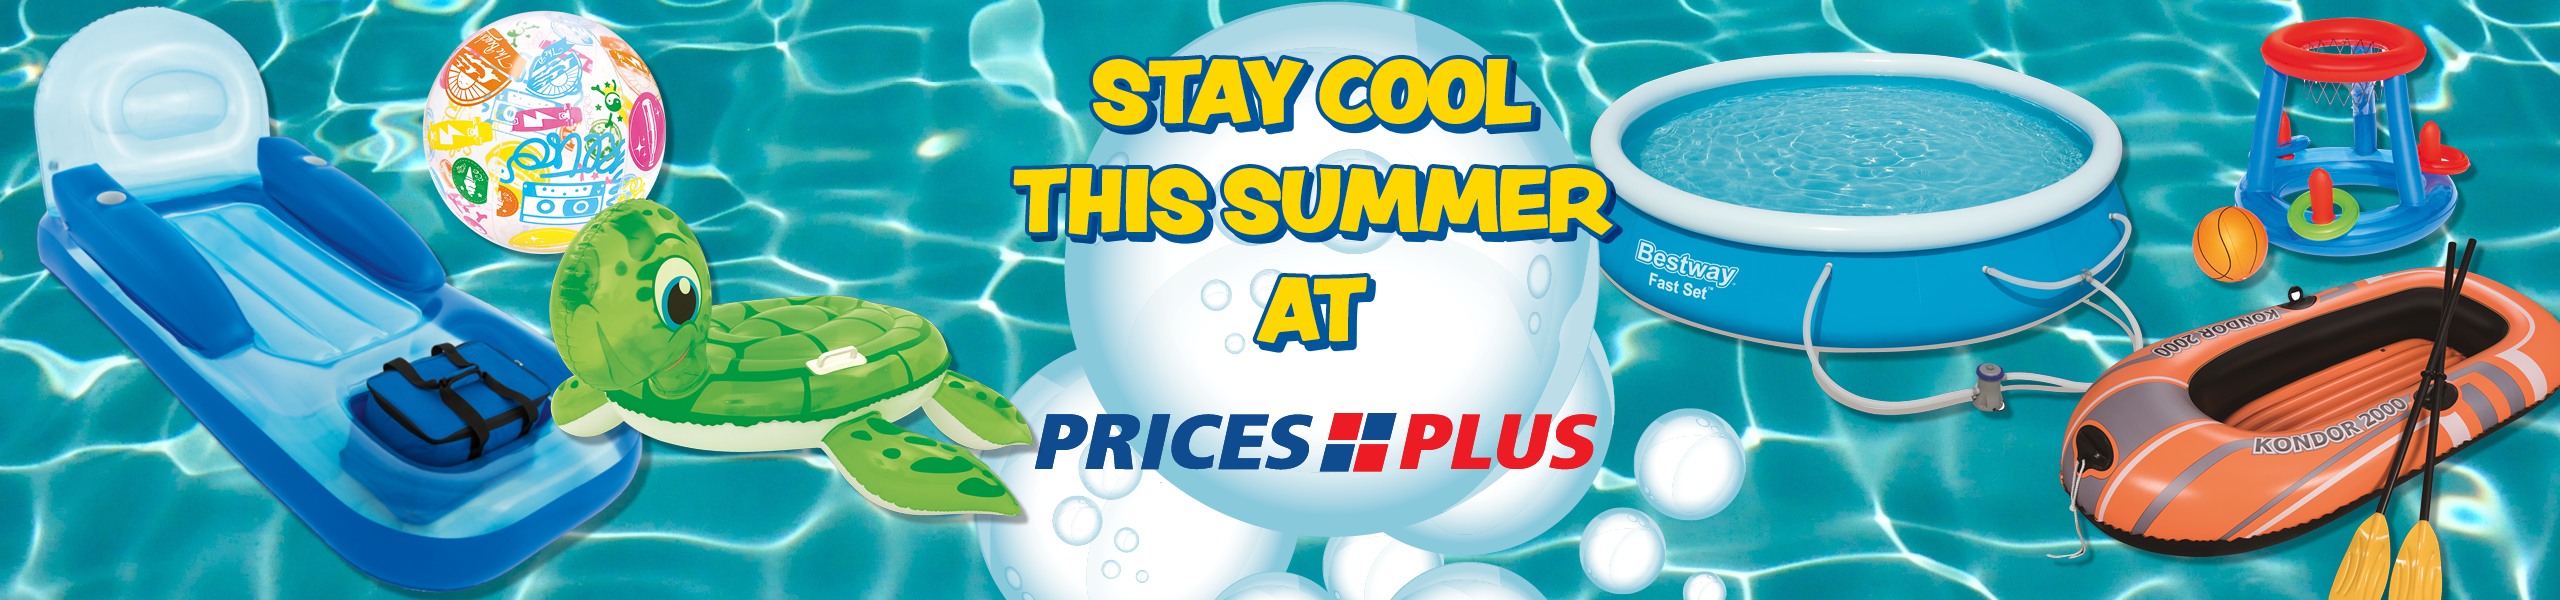 Stay Cool This Summer | Prices Plus